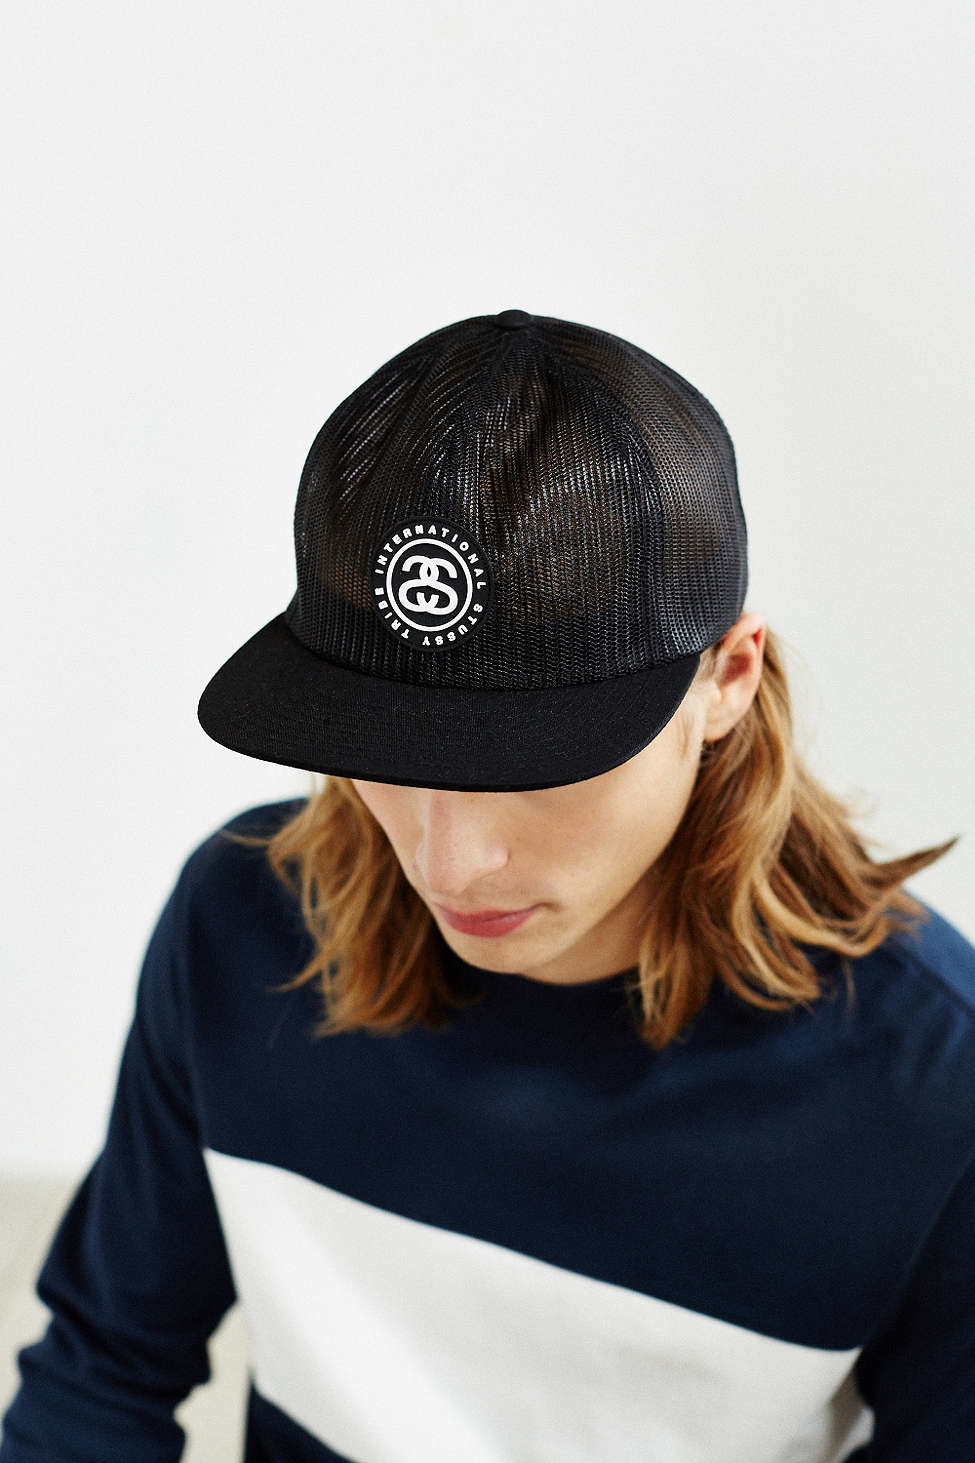 8018298d967 Lyst - Stussy International Mesh Snapback Hat in Black for Men